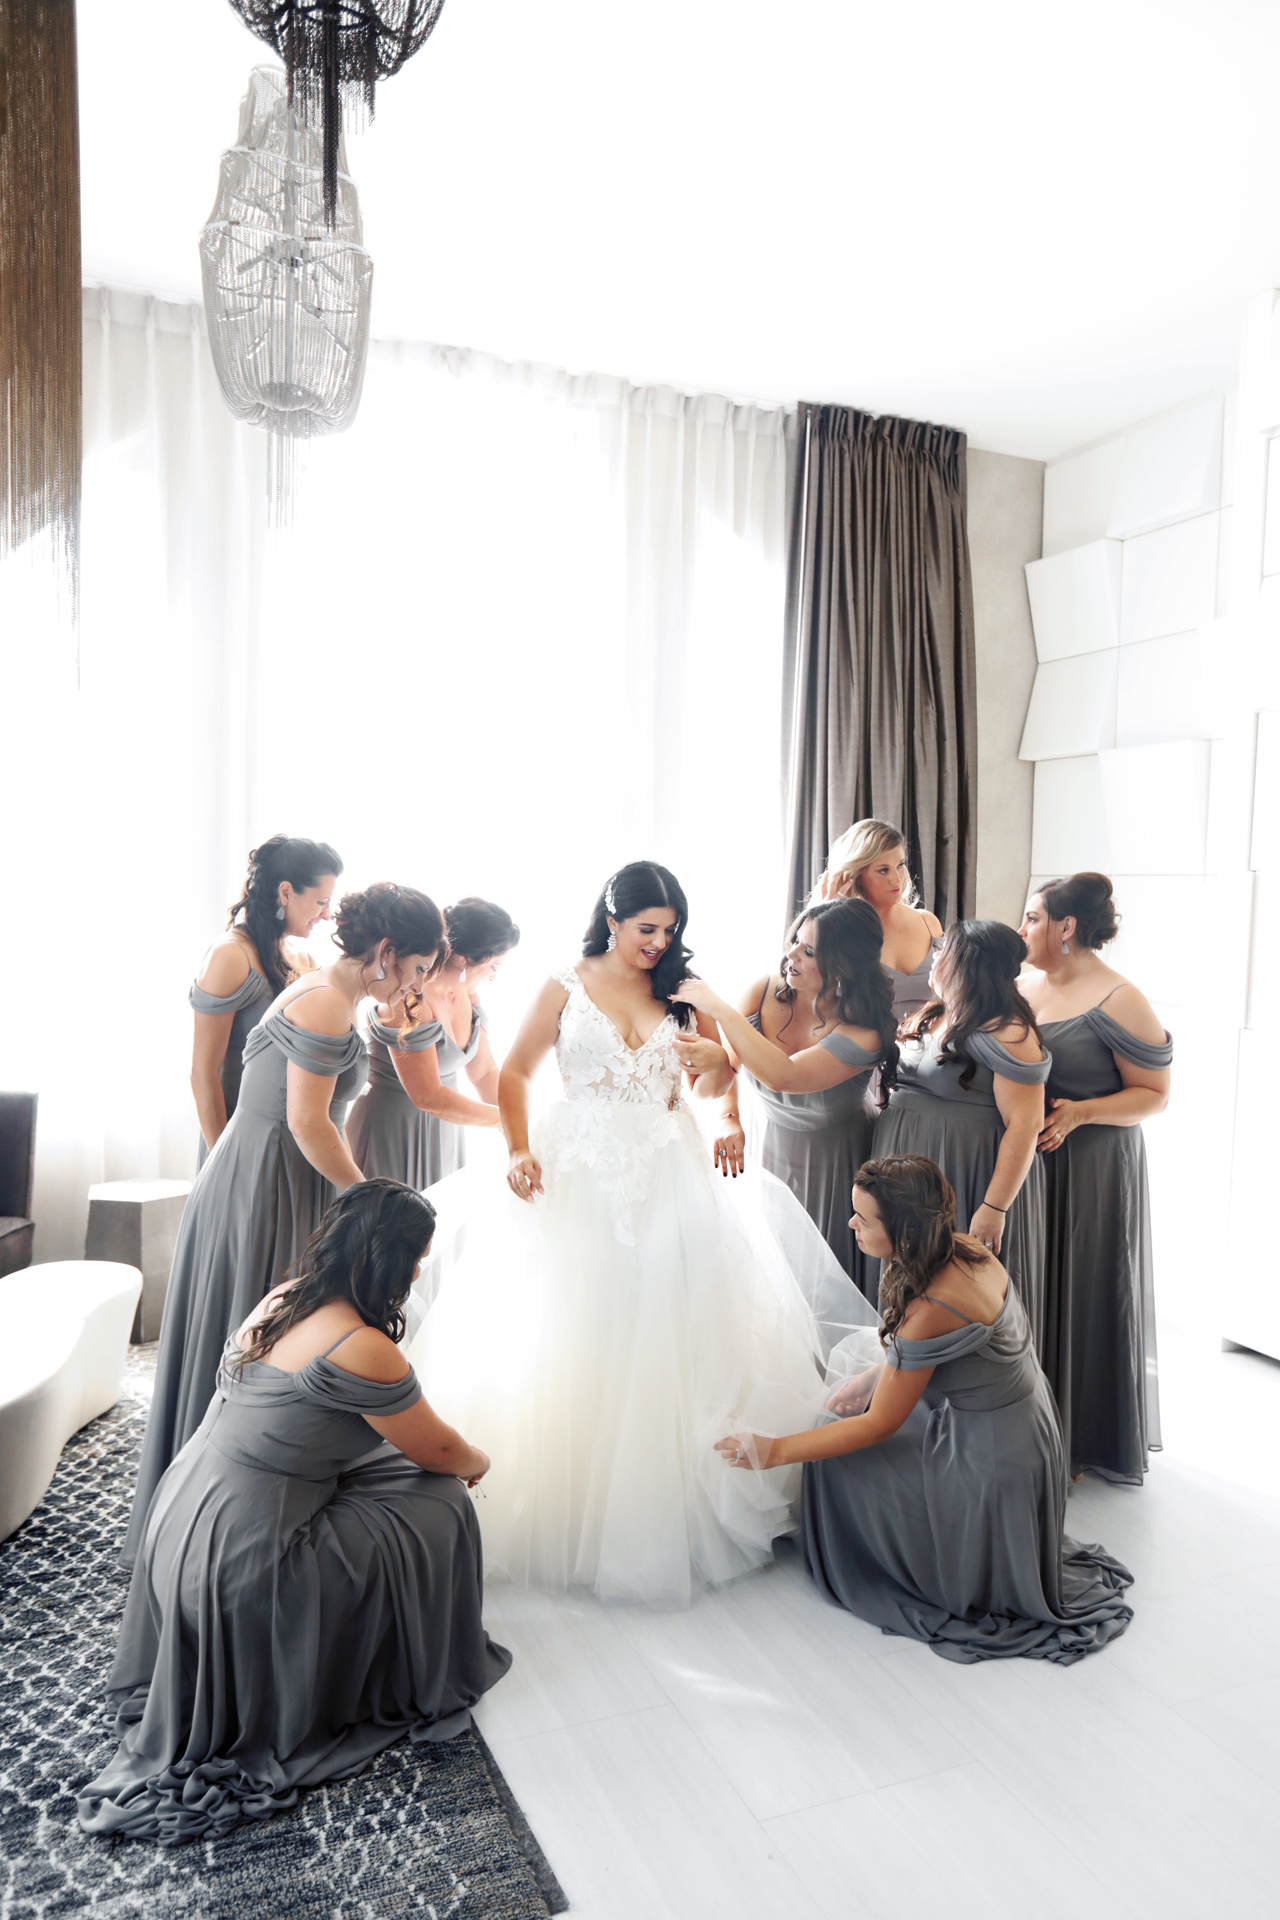 bridesmaids assist the bride before the wedding ceremony